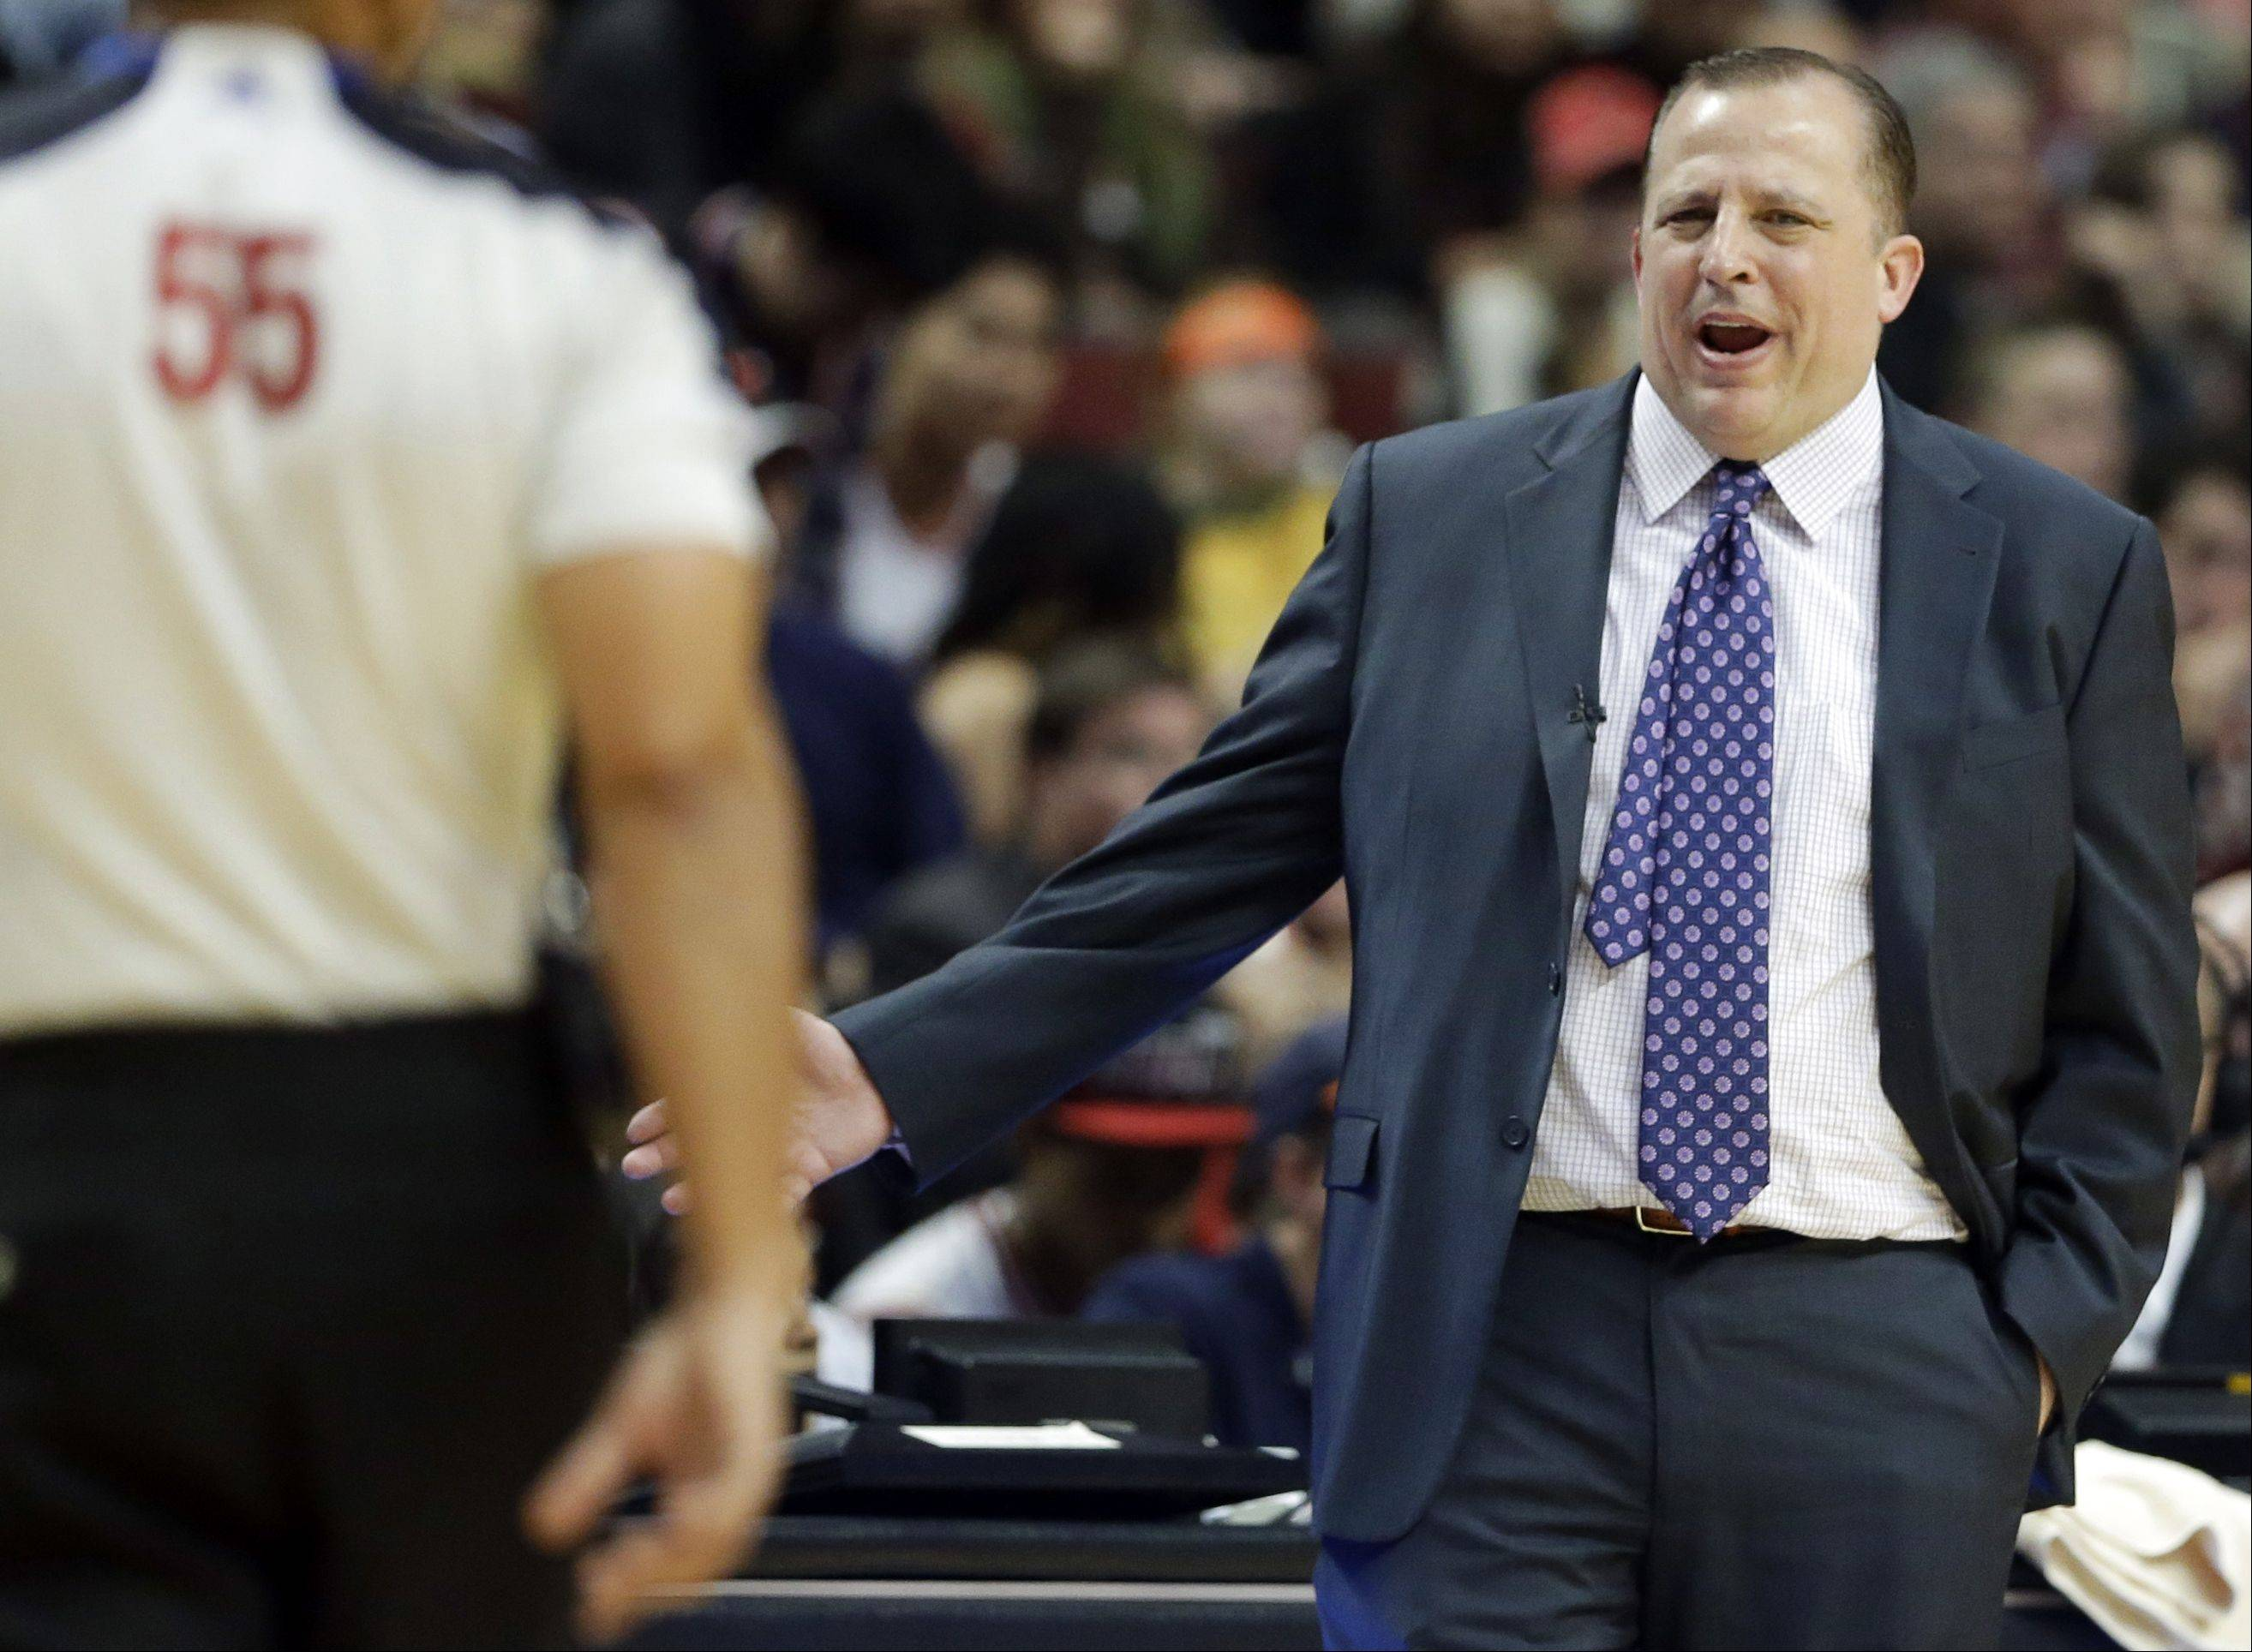 Chicago Bulls head coach Tom Thibodeau reacts to a call during the second half of an NBA basketball game against the New York Knicks in Chicago, Thursday, Oct. 31, 2013. The Bulls won 82-81.